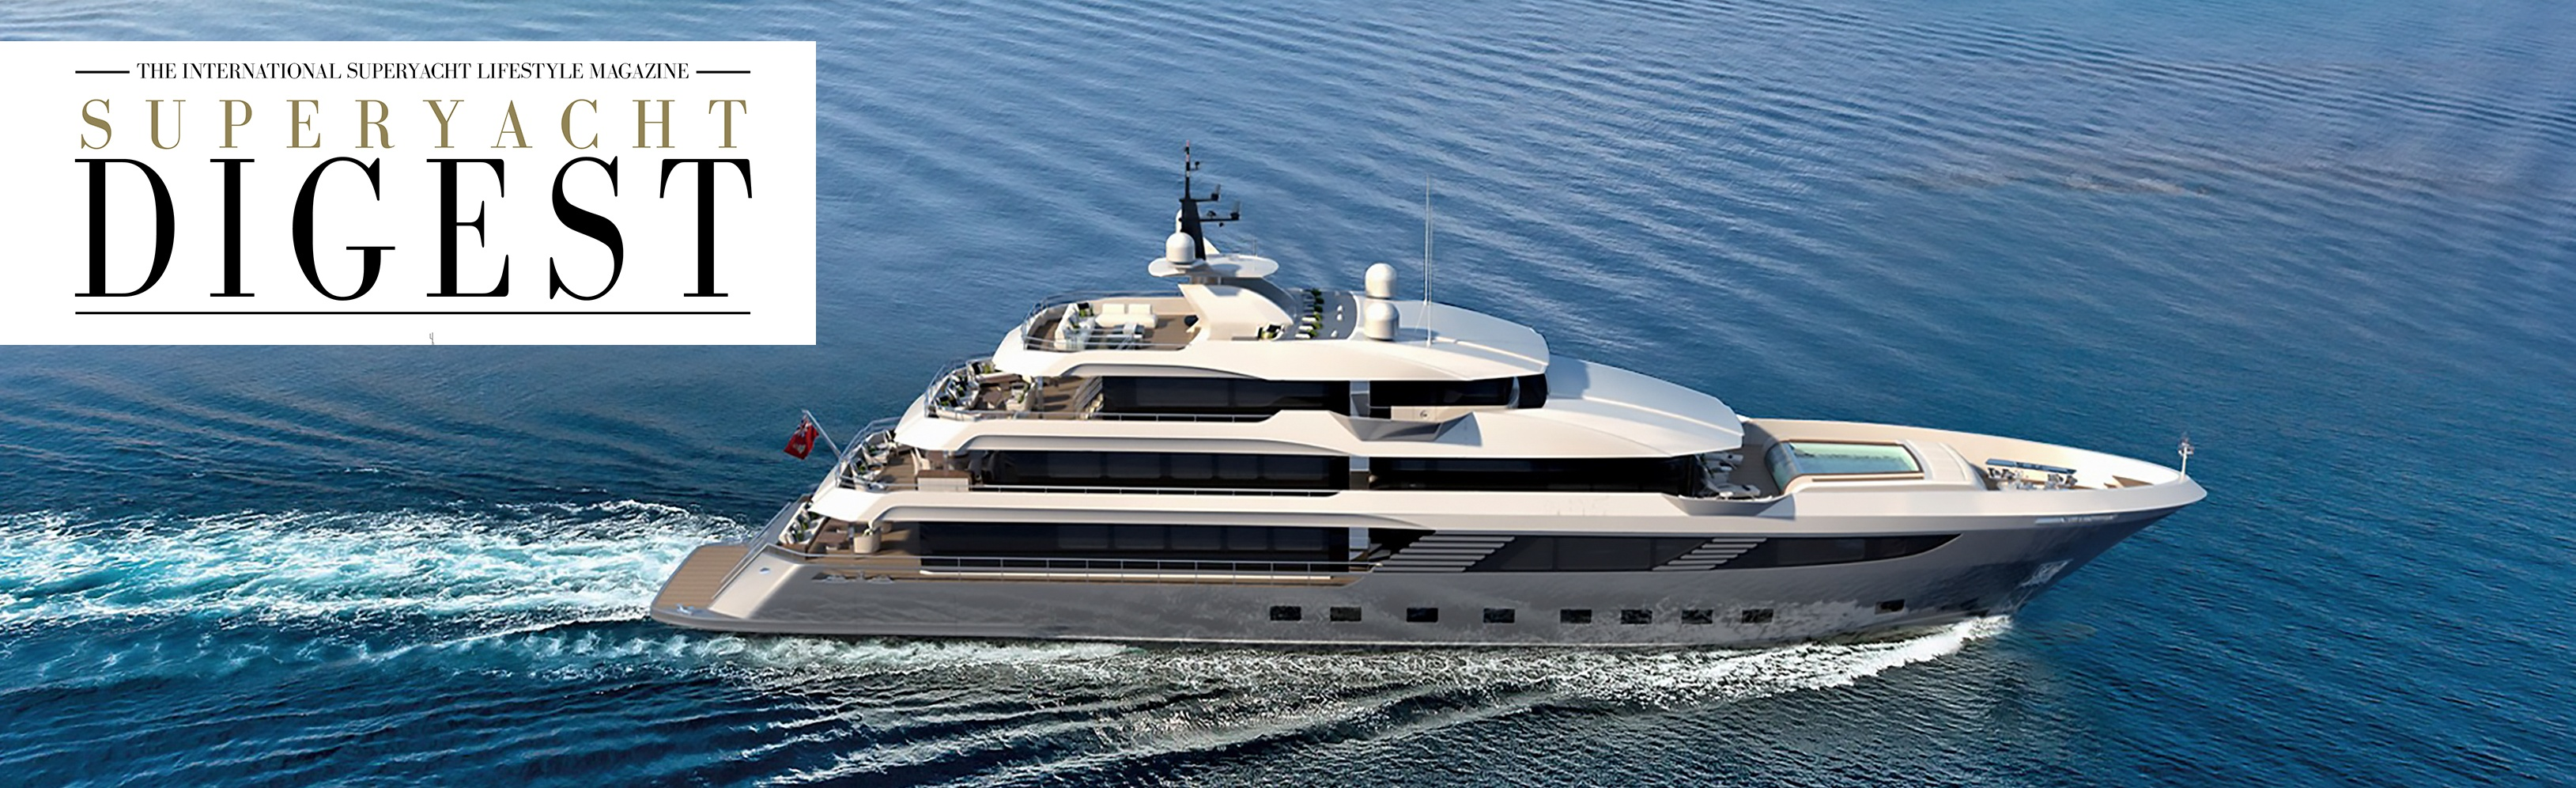 Superyacht-Digest,-Majesty-175.jpg